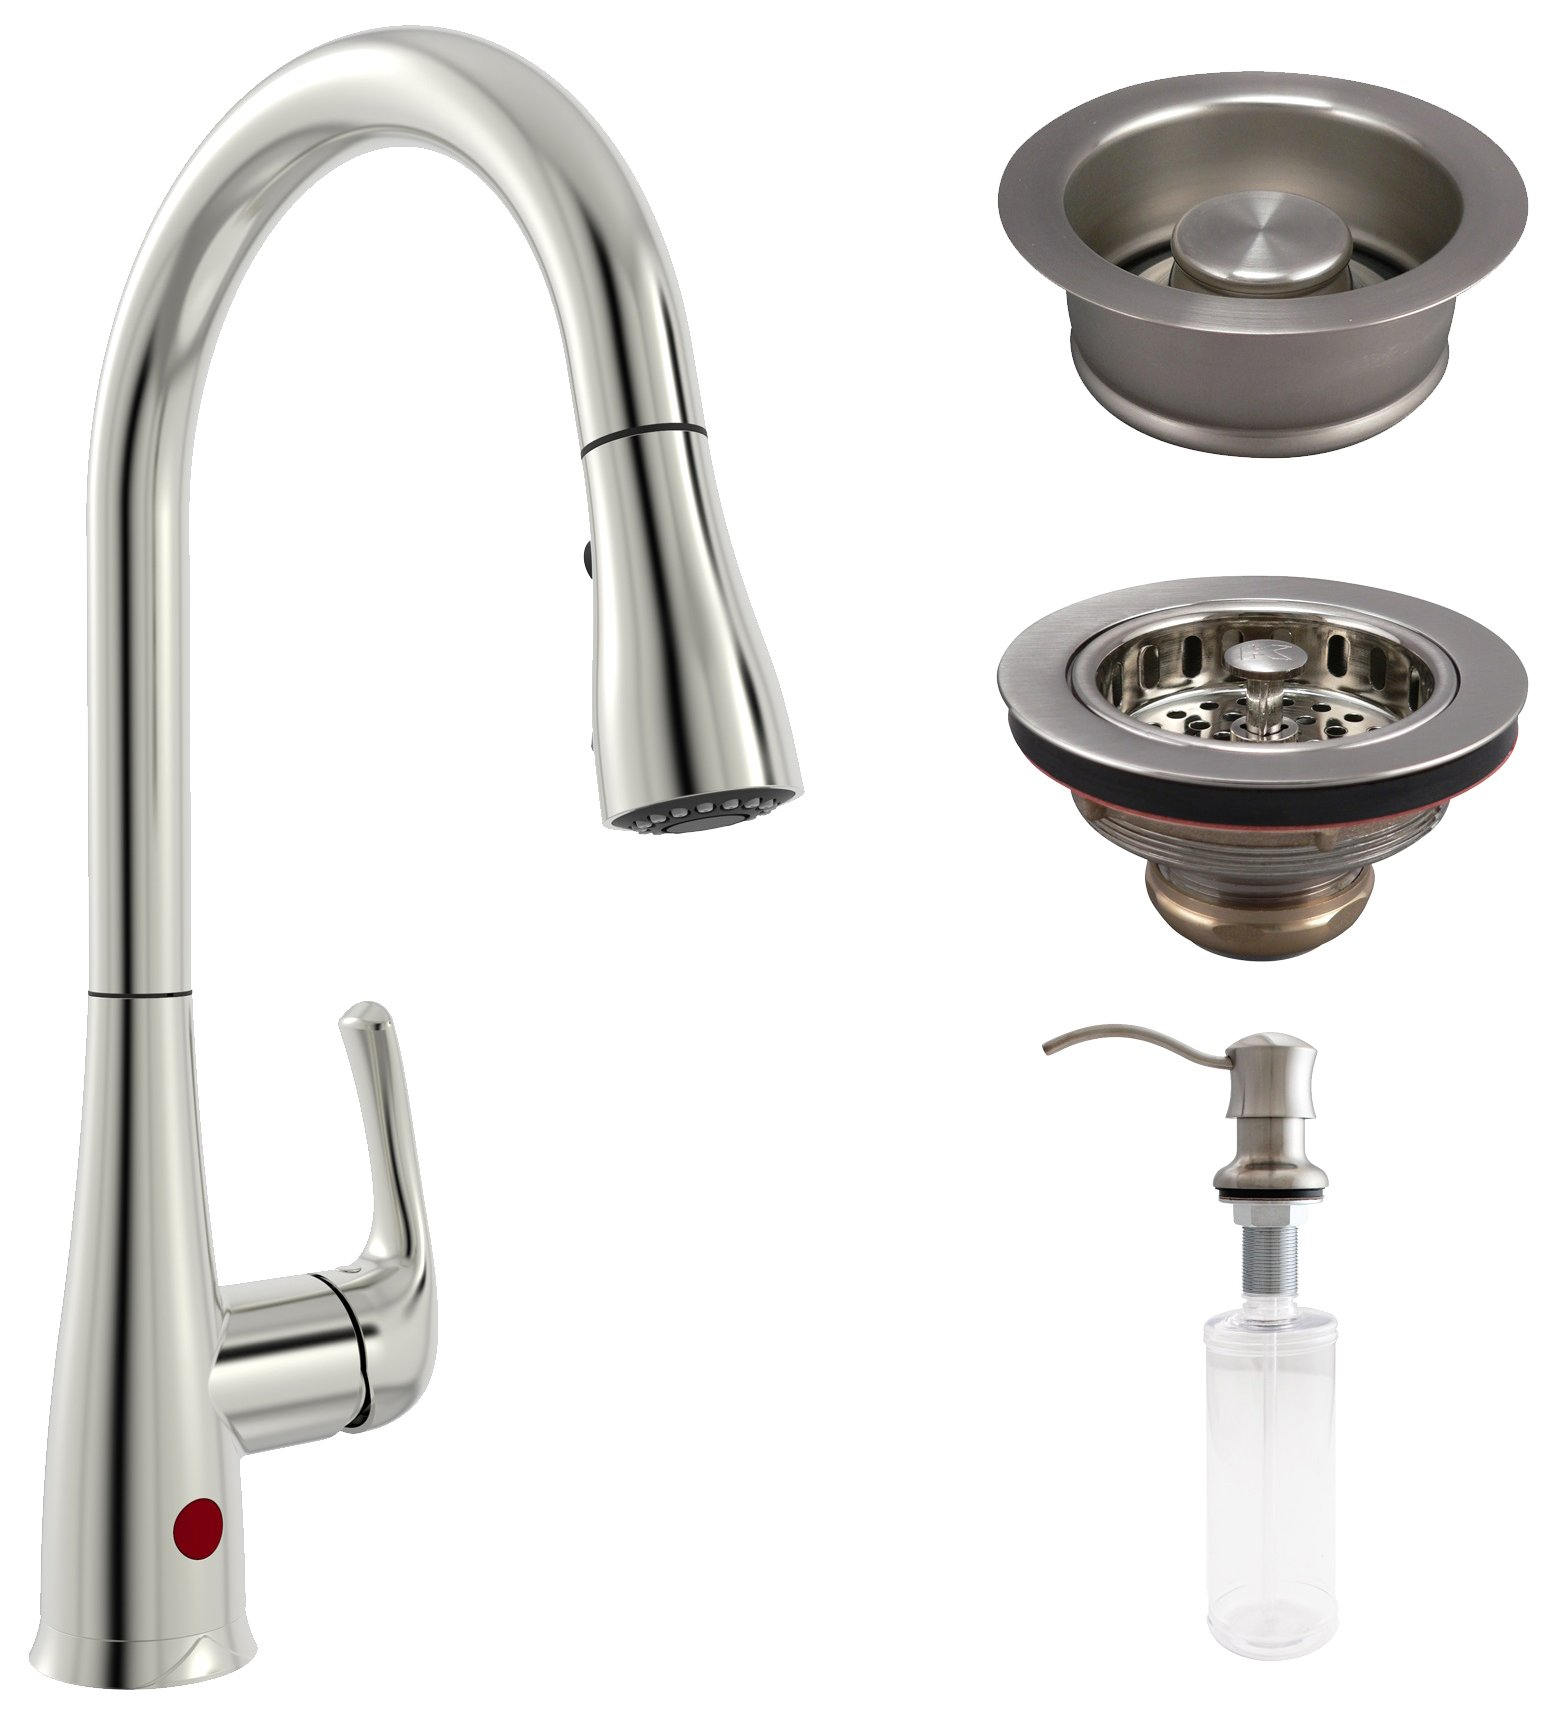 Plumb Pak KITNEX76BNGD Premium Kitchen Kit with Nexo Motion Activated Faucet, Garbage Disposal Stopper, Drop Post Sink Strainer, and Soap Dispenser, Brushed Nickel